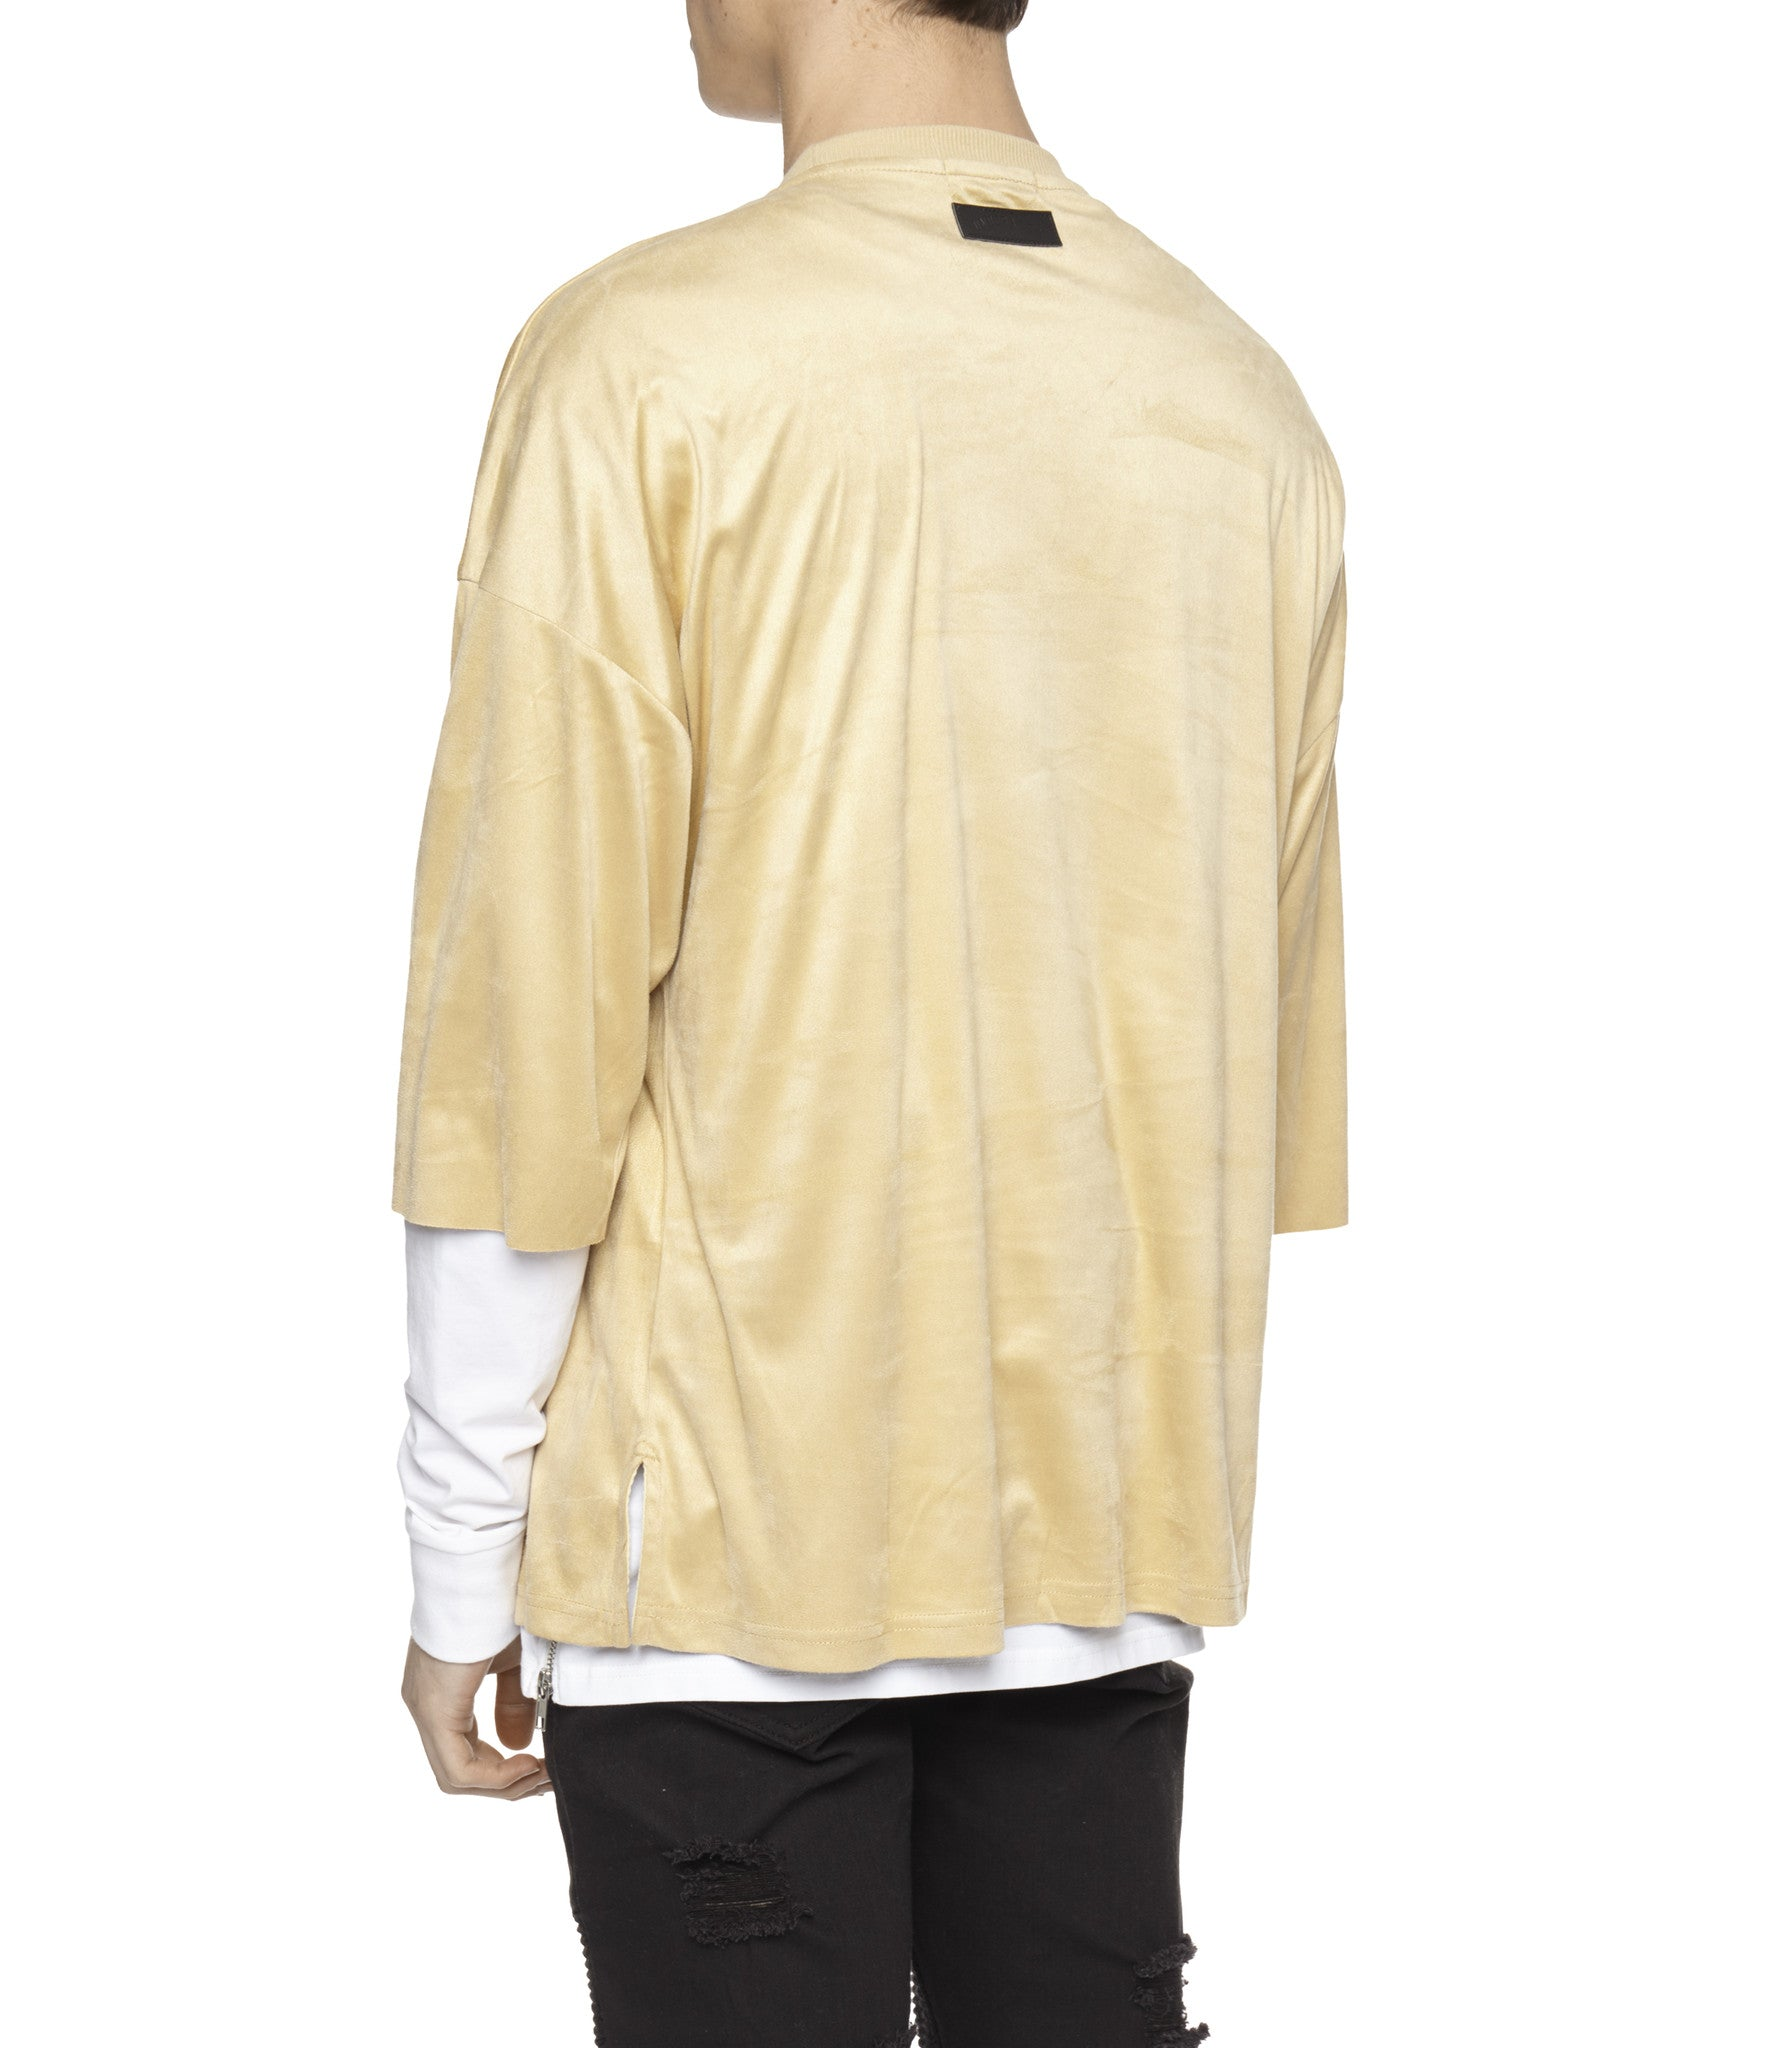 TS302 Suede Oversized Box Tee - Beige - underated london - underatedco - 5